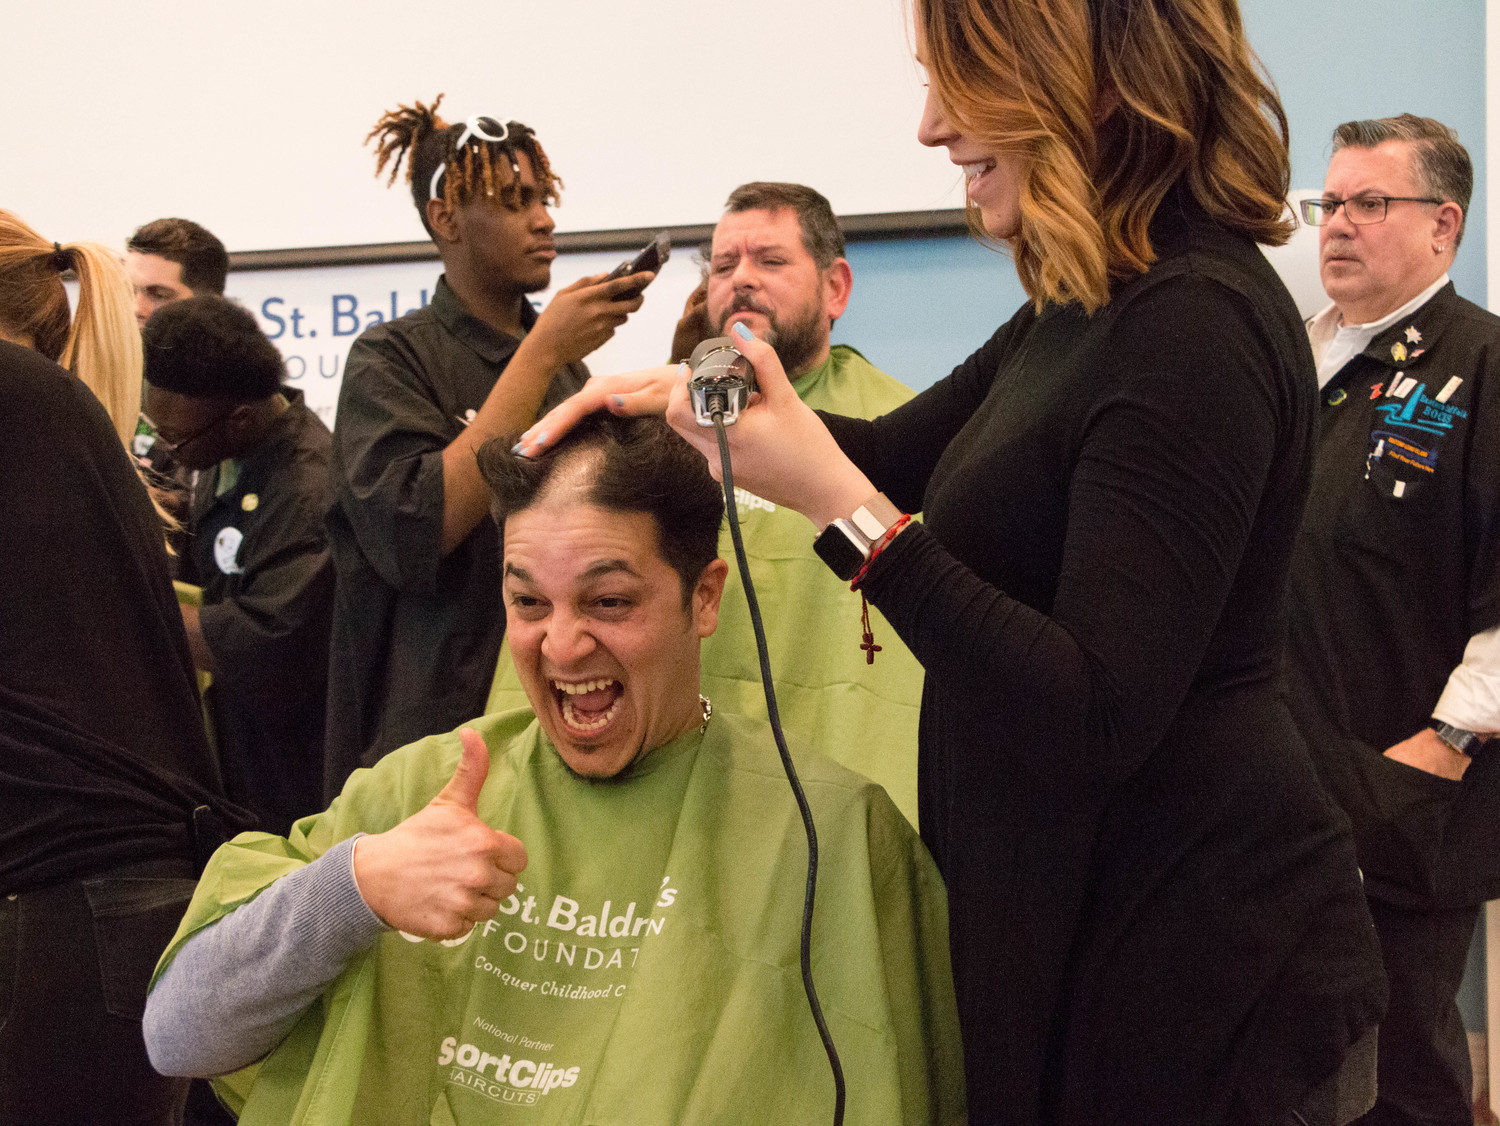 Juan C. Bosques got his head shaved at the St. Baldrick's fundraiser in Rockville Centre last year, which was attended by more than 200 shavees and ponytail donators and helped raise about $450,000.